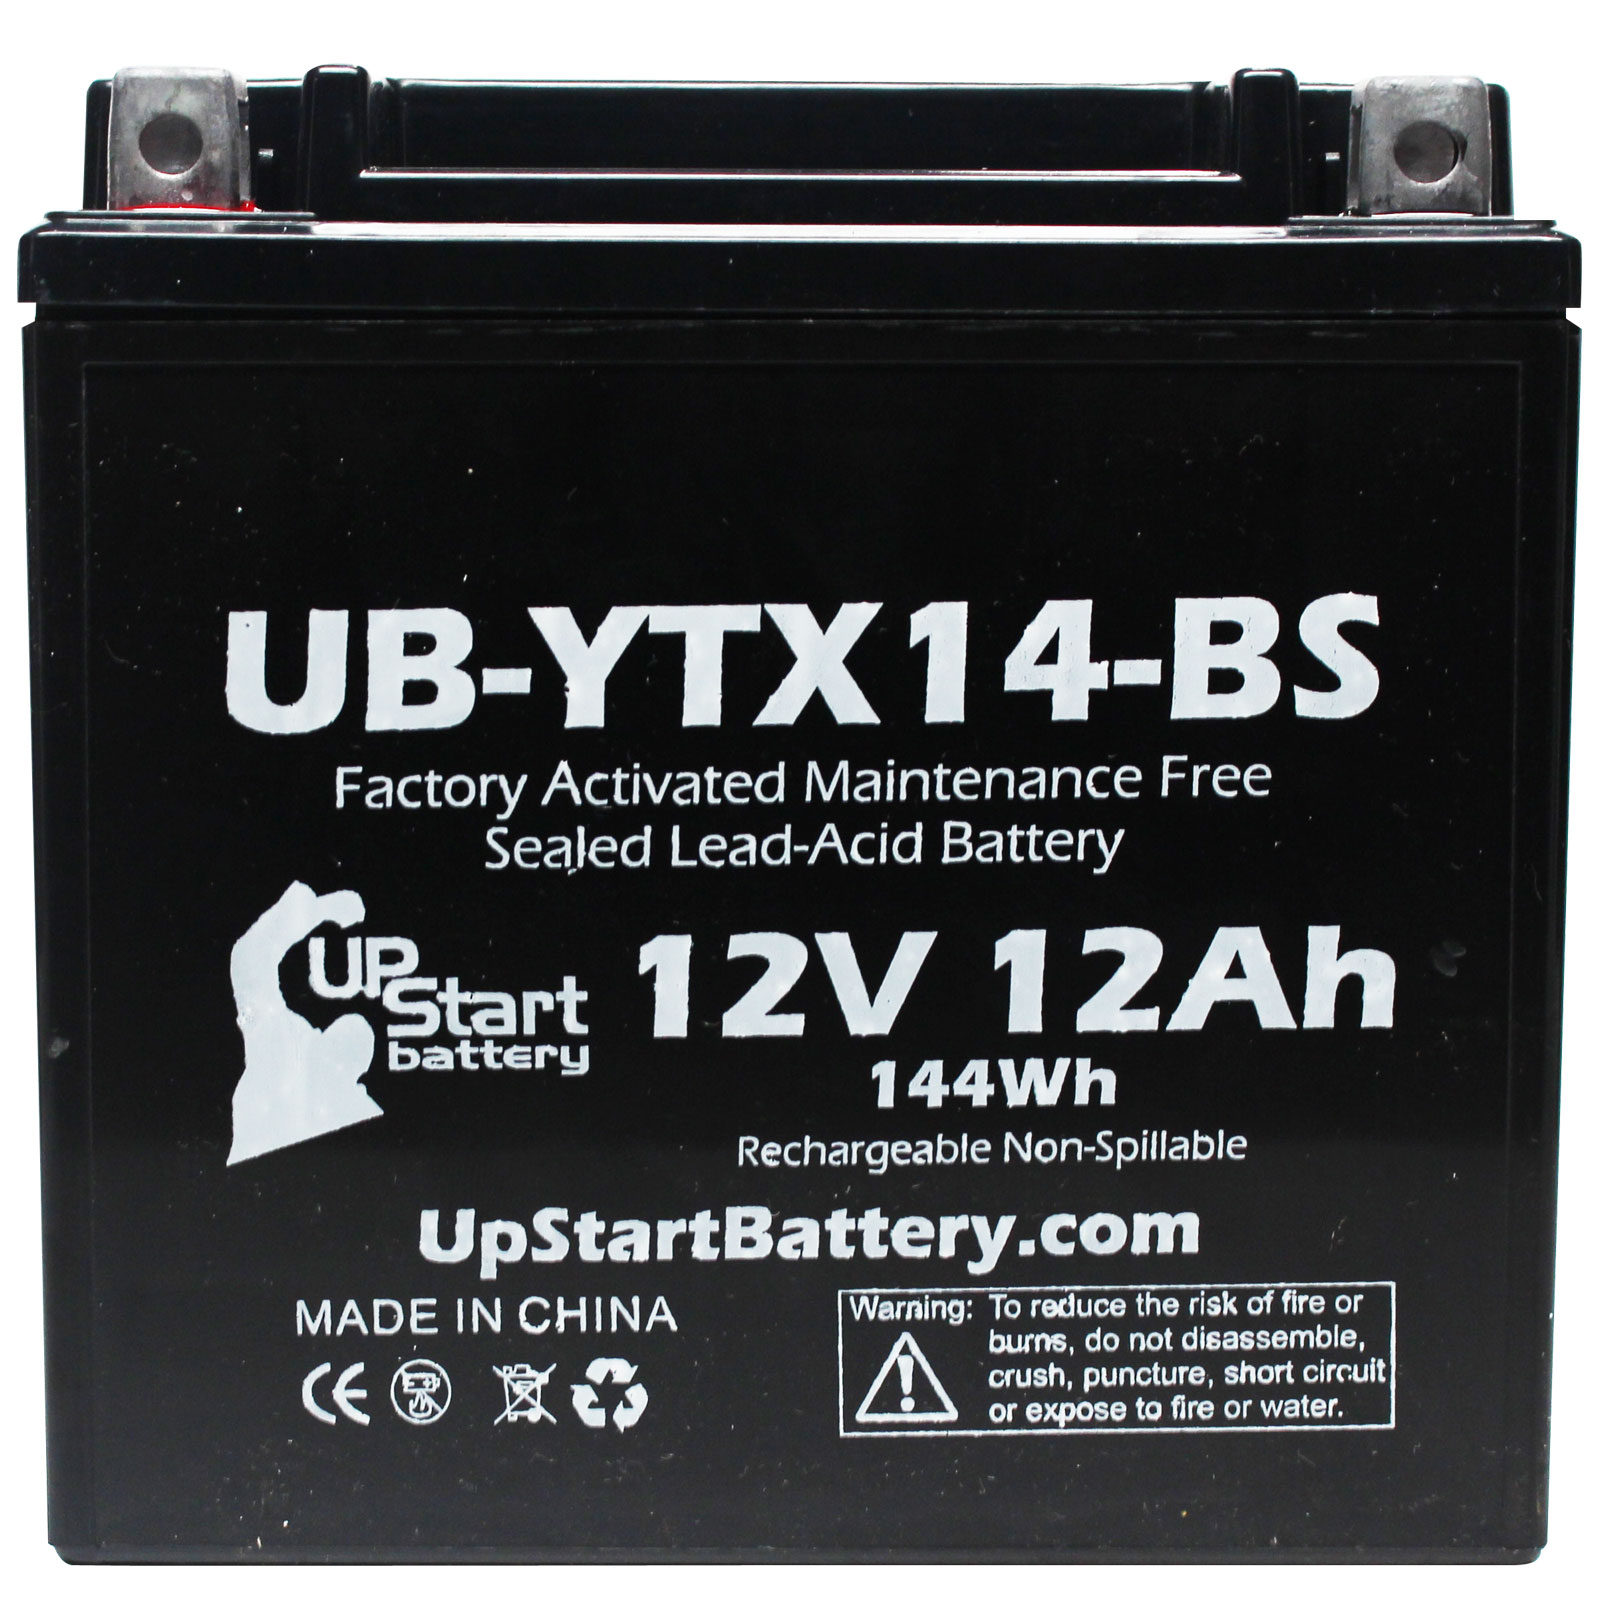 2-Pack Replacement 2005 Honda TRX350 Rancher 350 CC Factory Activated, Maintenance Free, ATV Battery - 12V, 12AH, UB-YTX14-BS - image 2 de 4